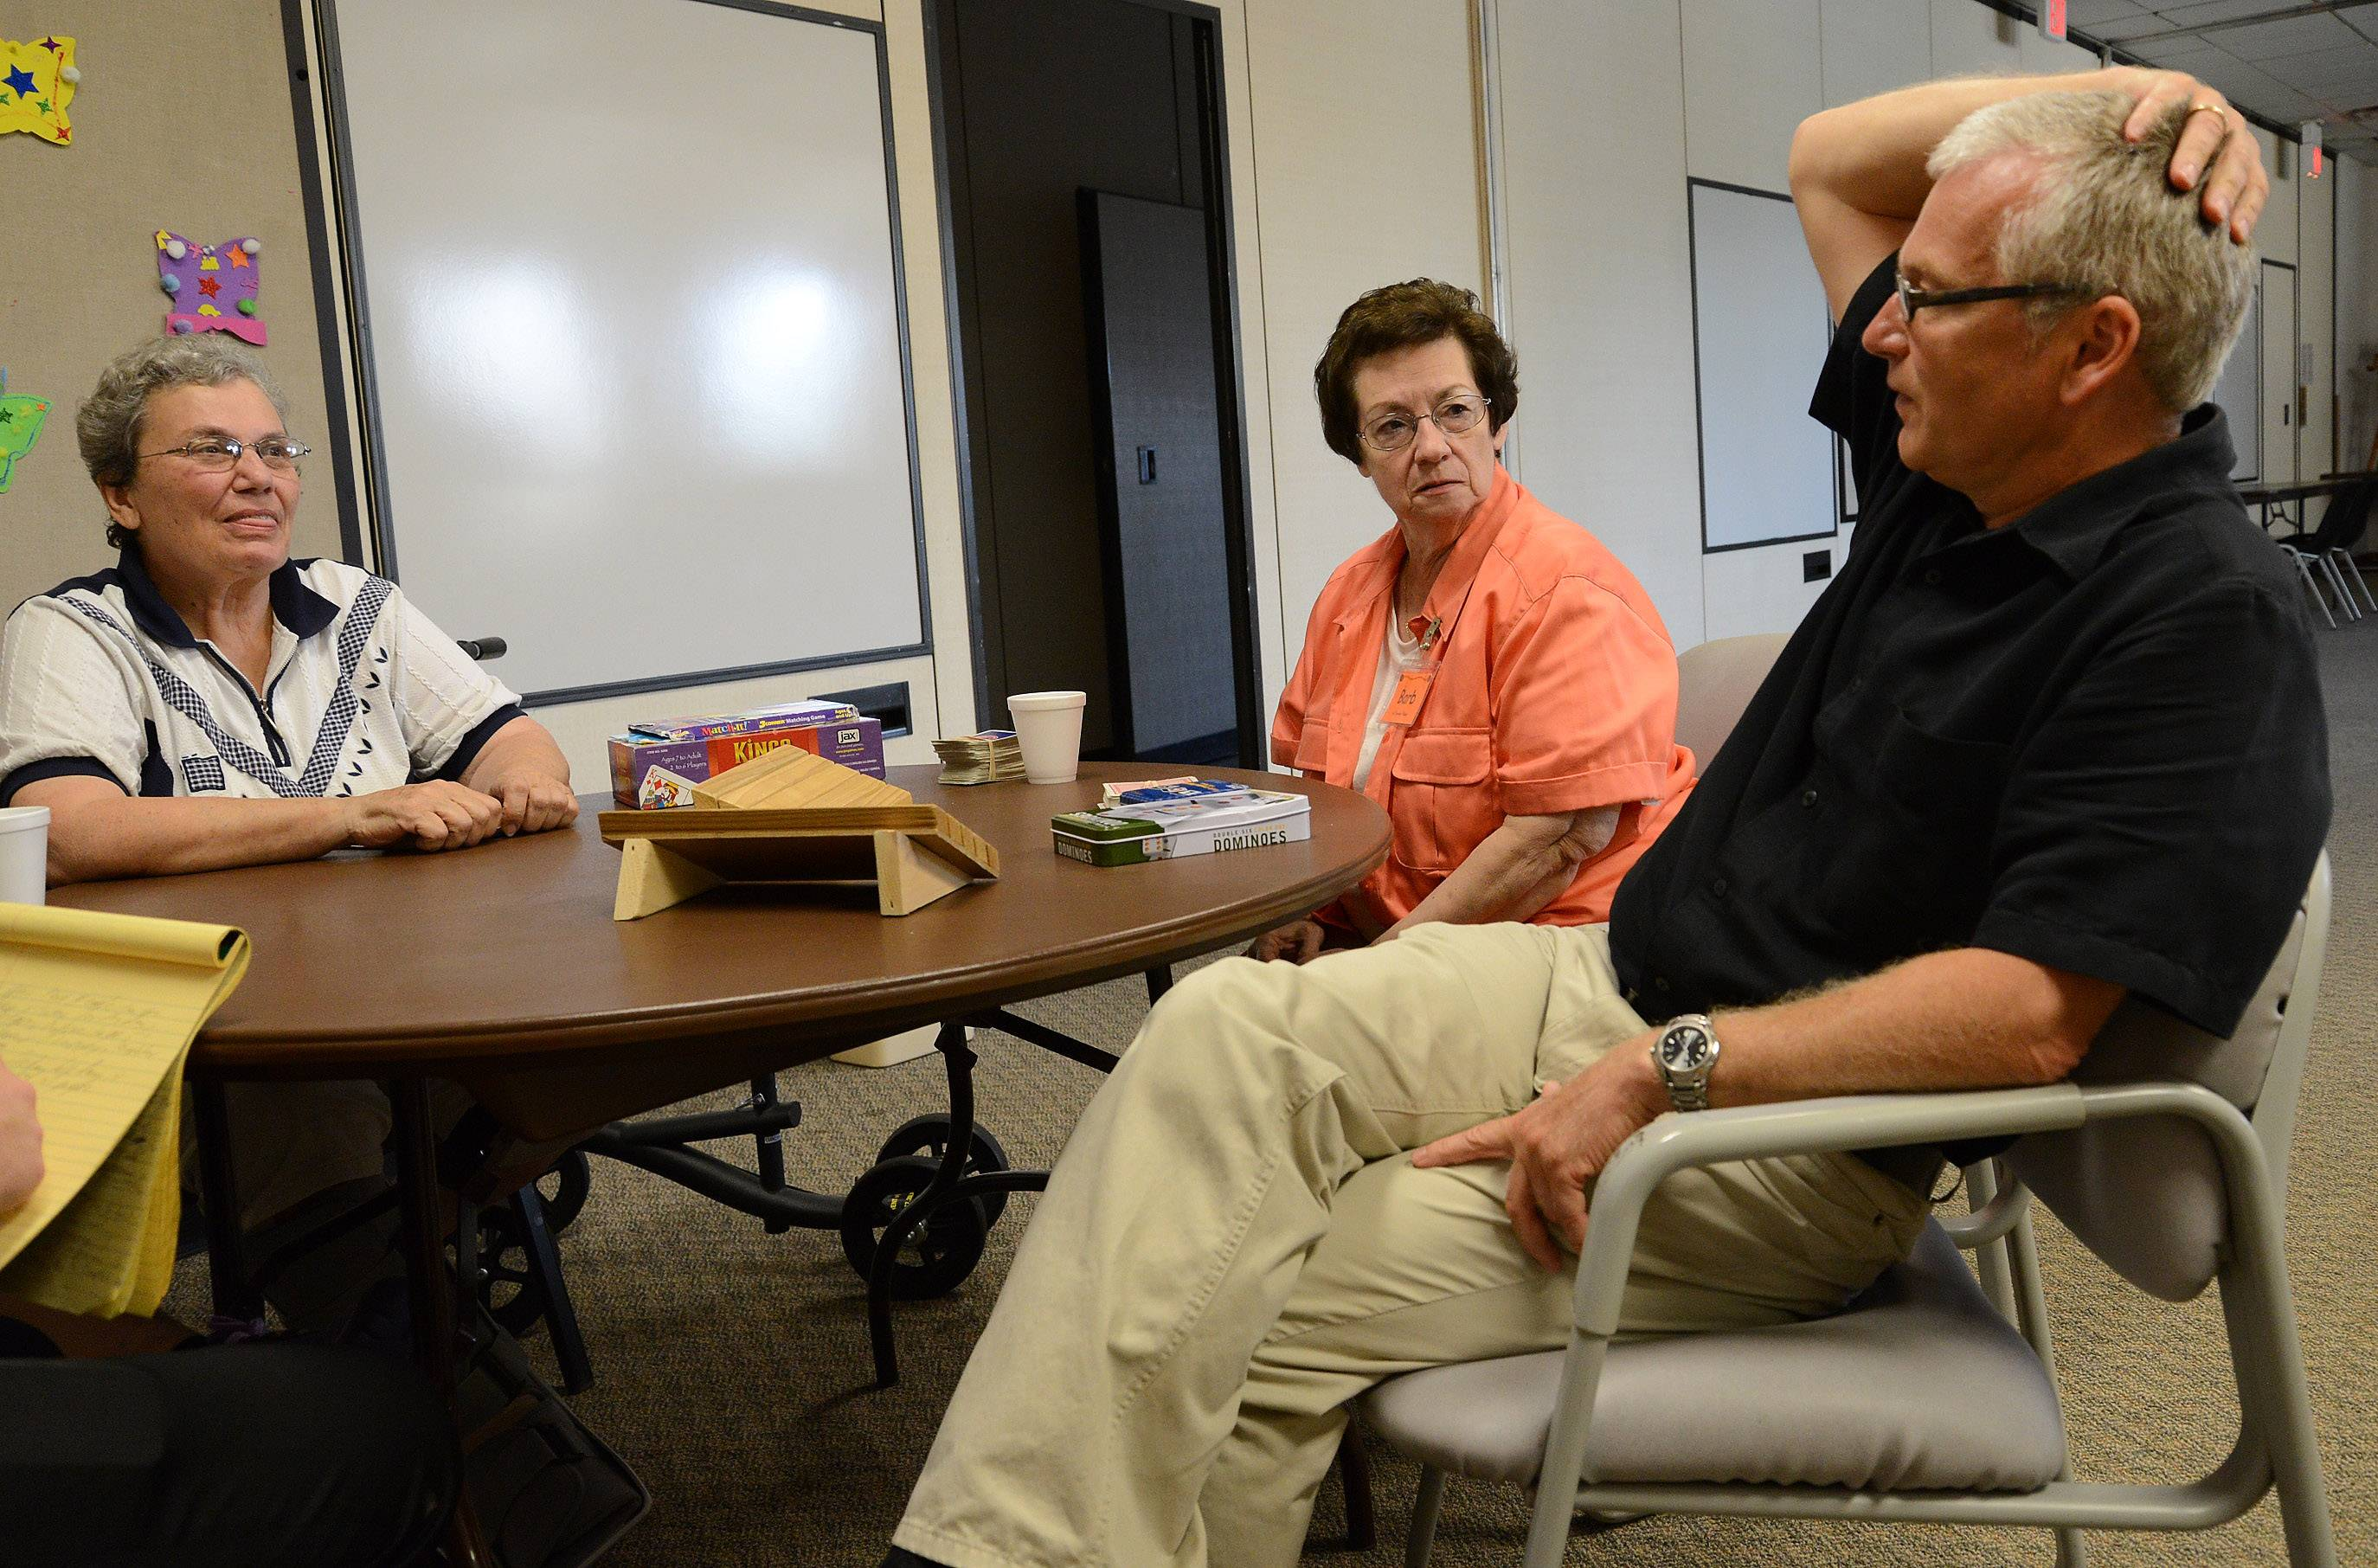 Co-coordinators Marge Hart, left, and Barb Walker talk with Pastor Stefen Potuznik of Christus Victor Lutheran Church at A Caring Place.